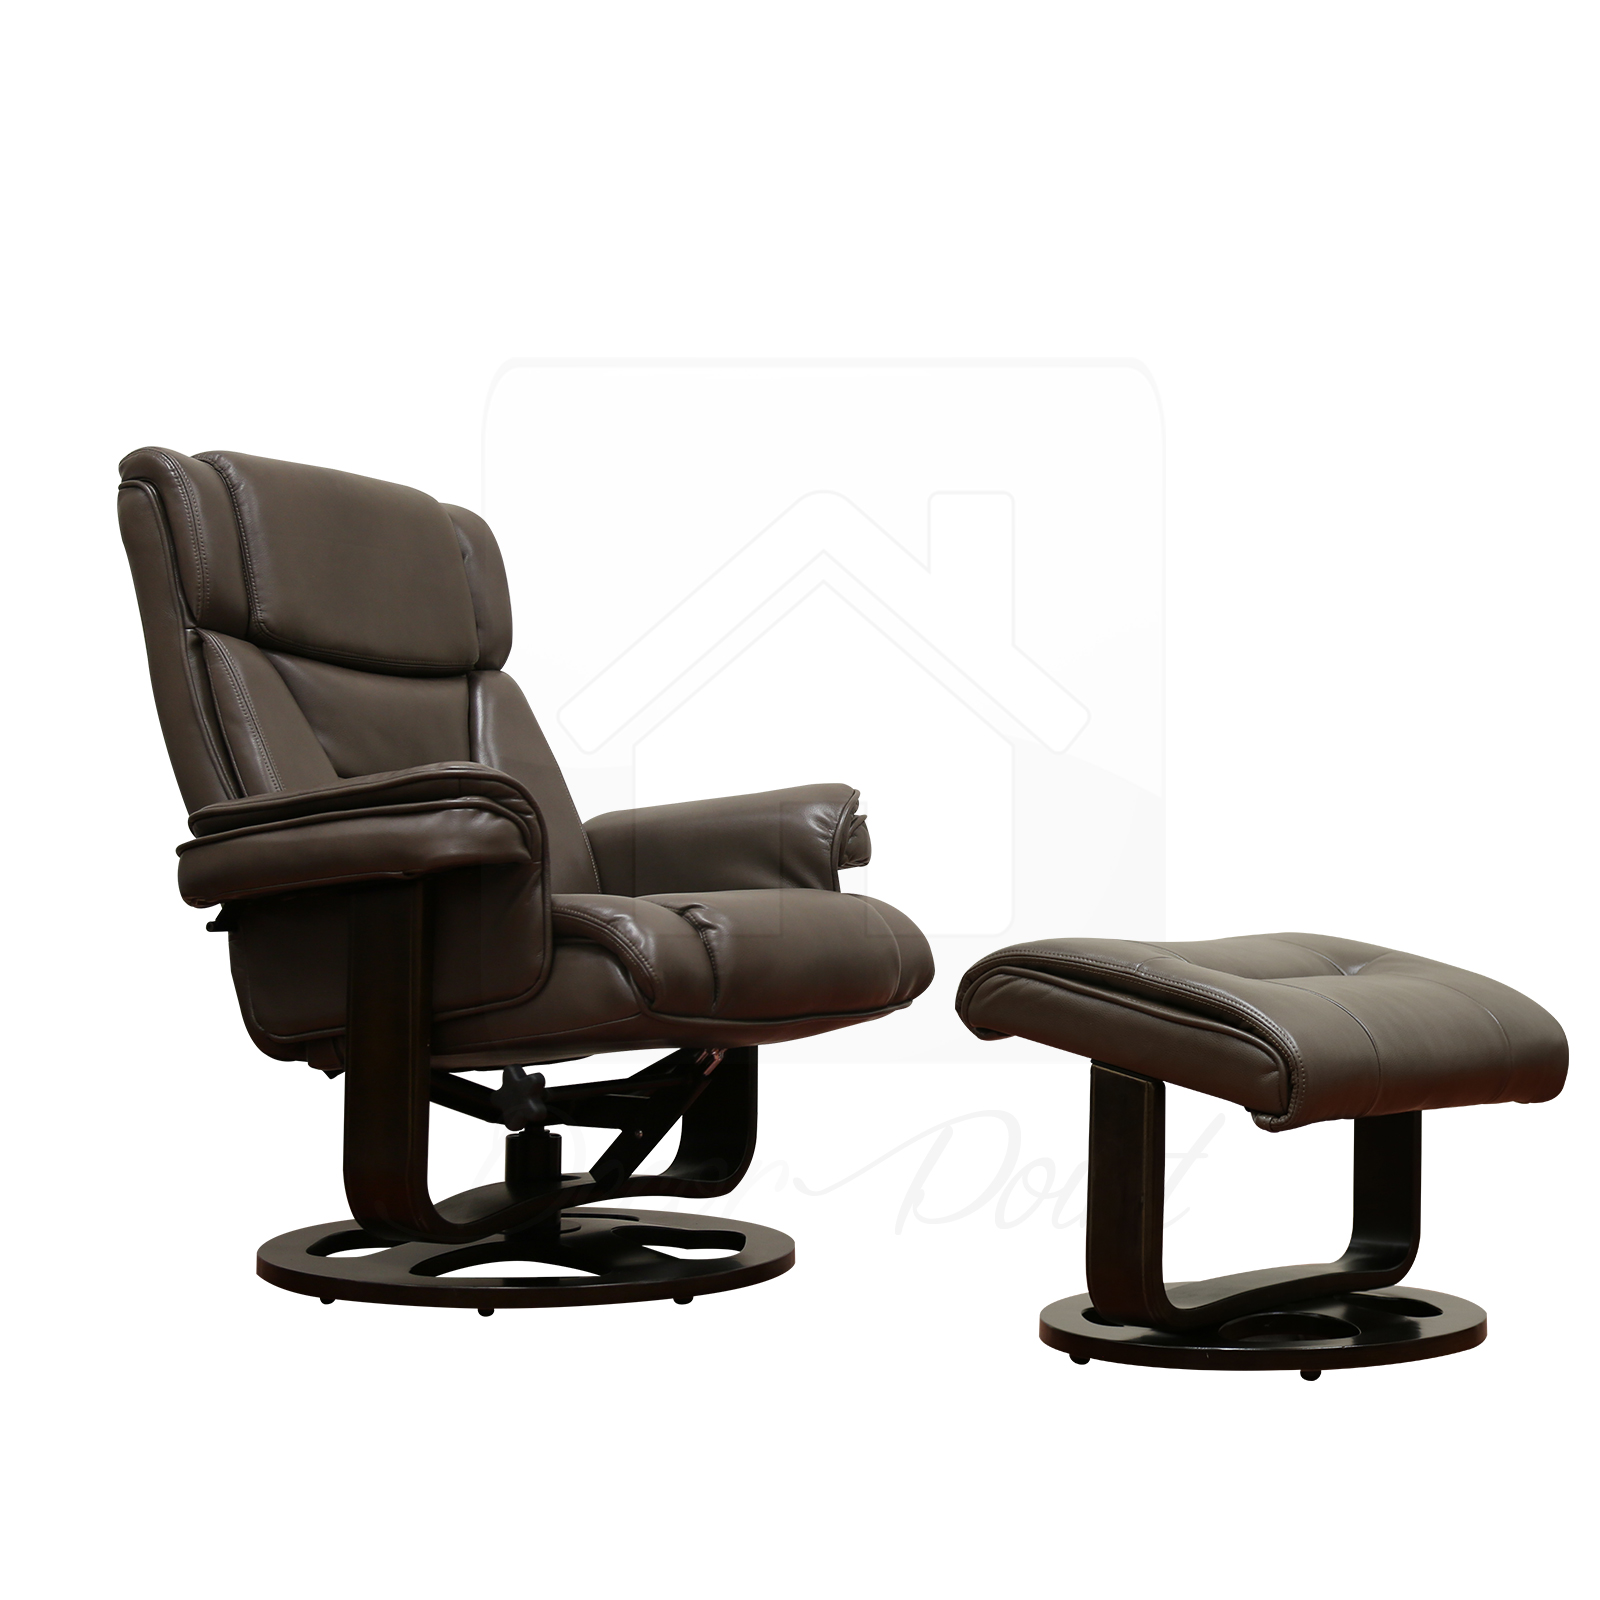 leather swivel recliner chair and ottoman glider rocker monash air camel 360 degree living room